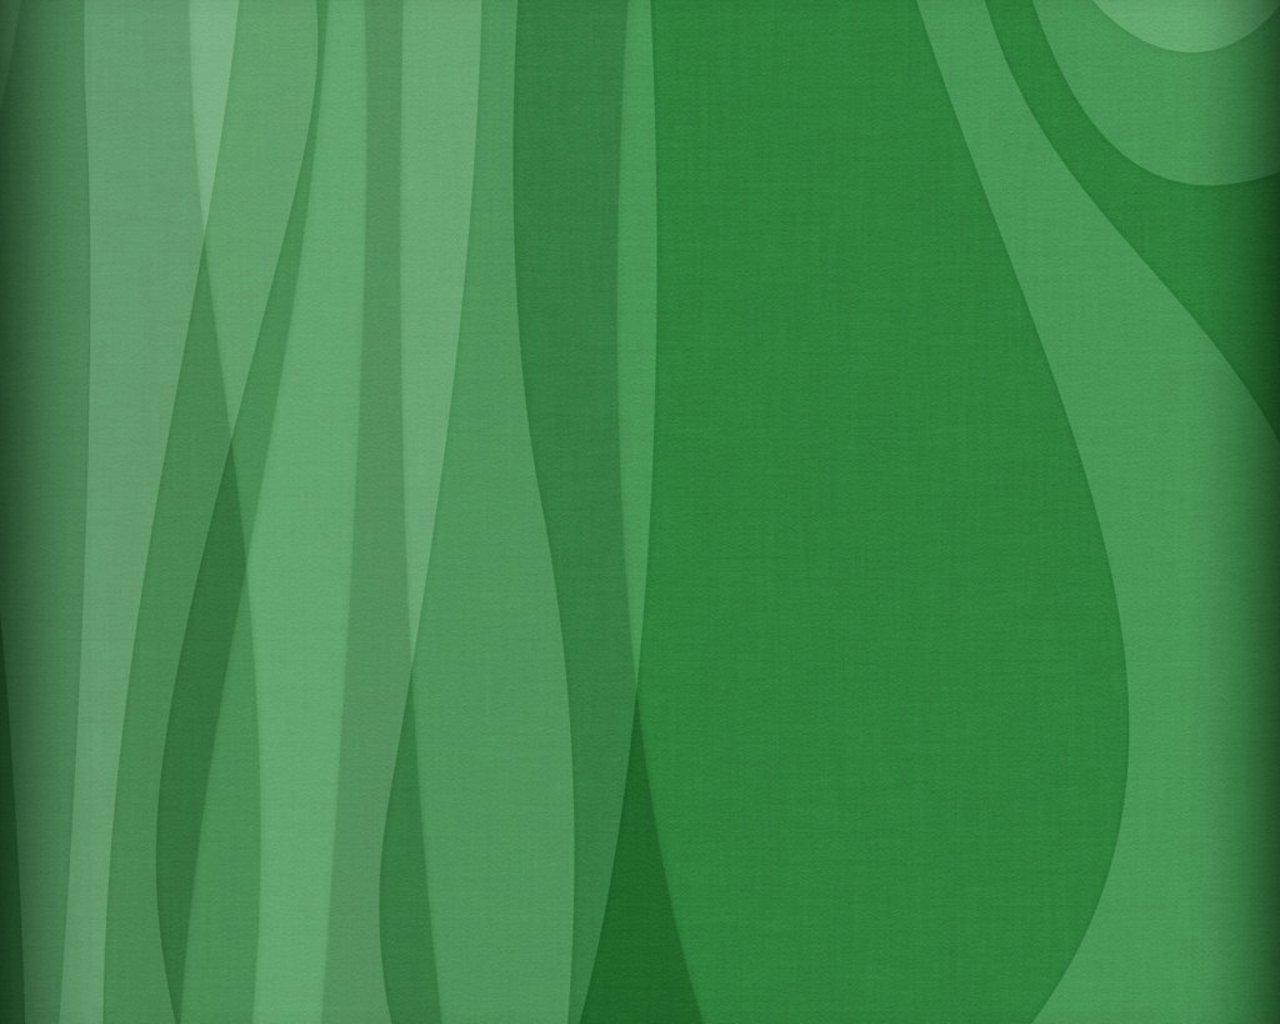 wallpapers simple green wallpaper - photo #12